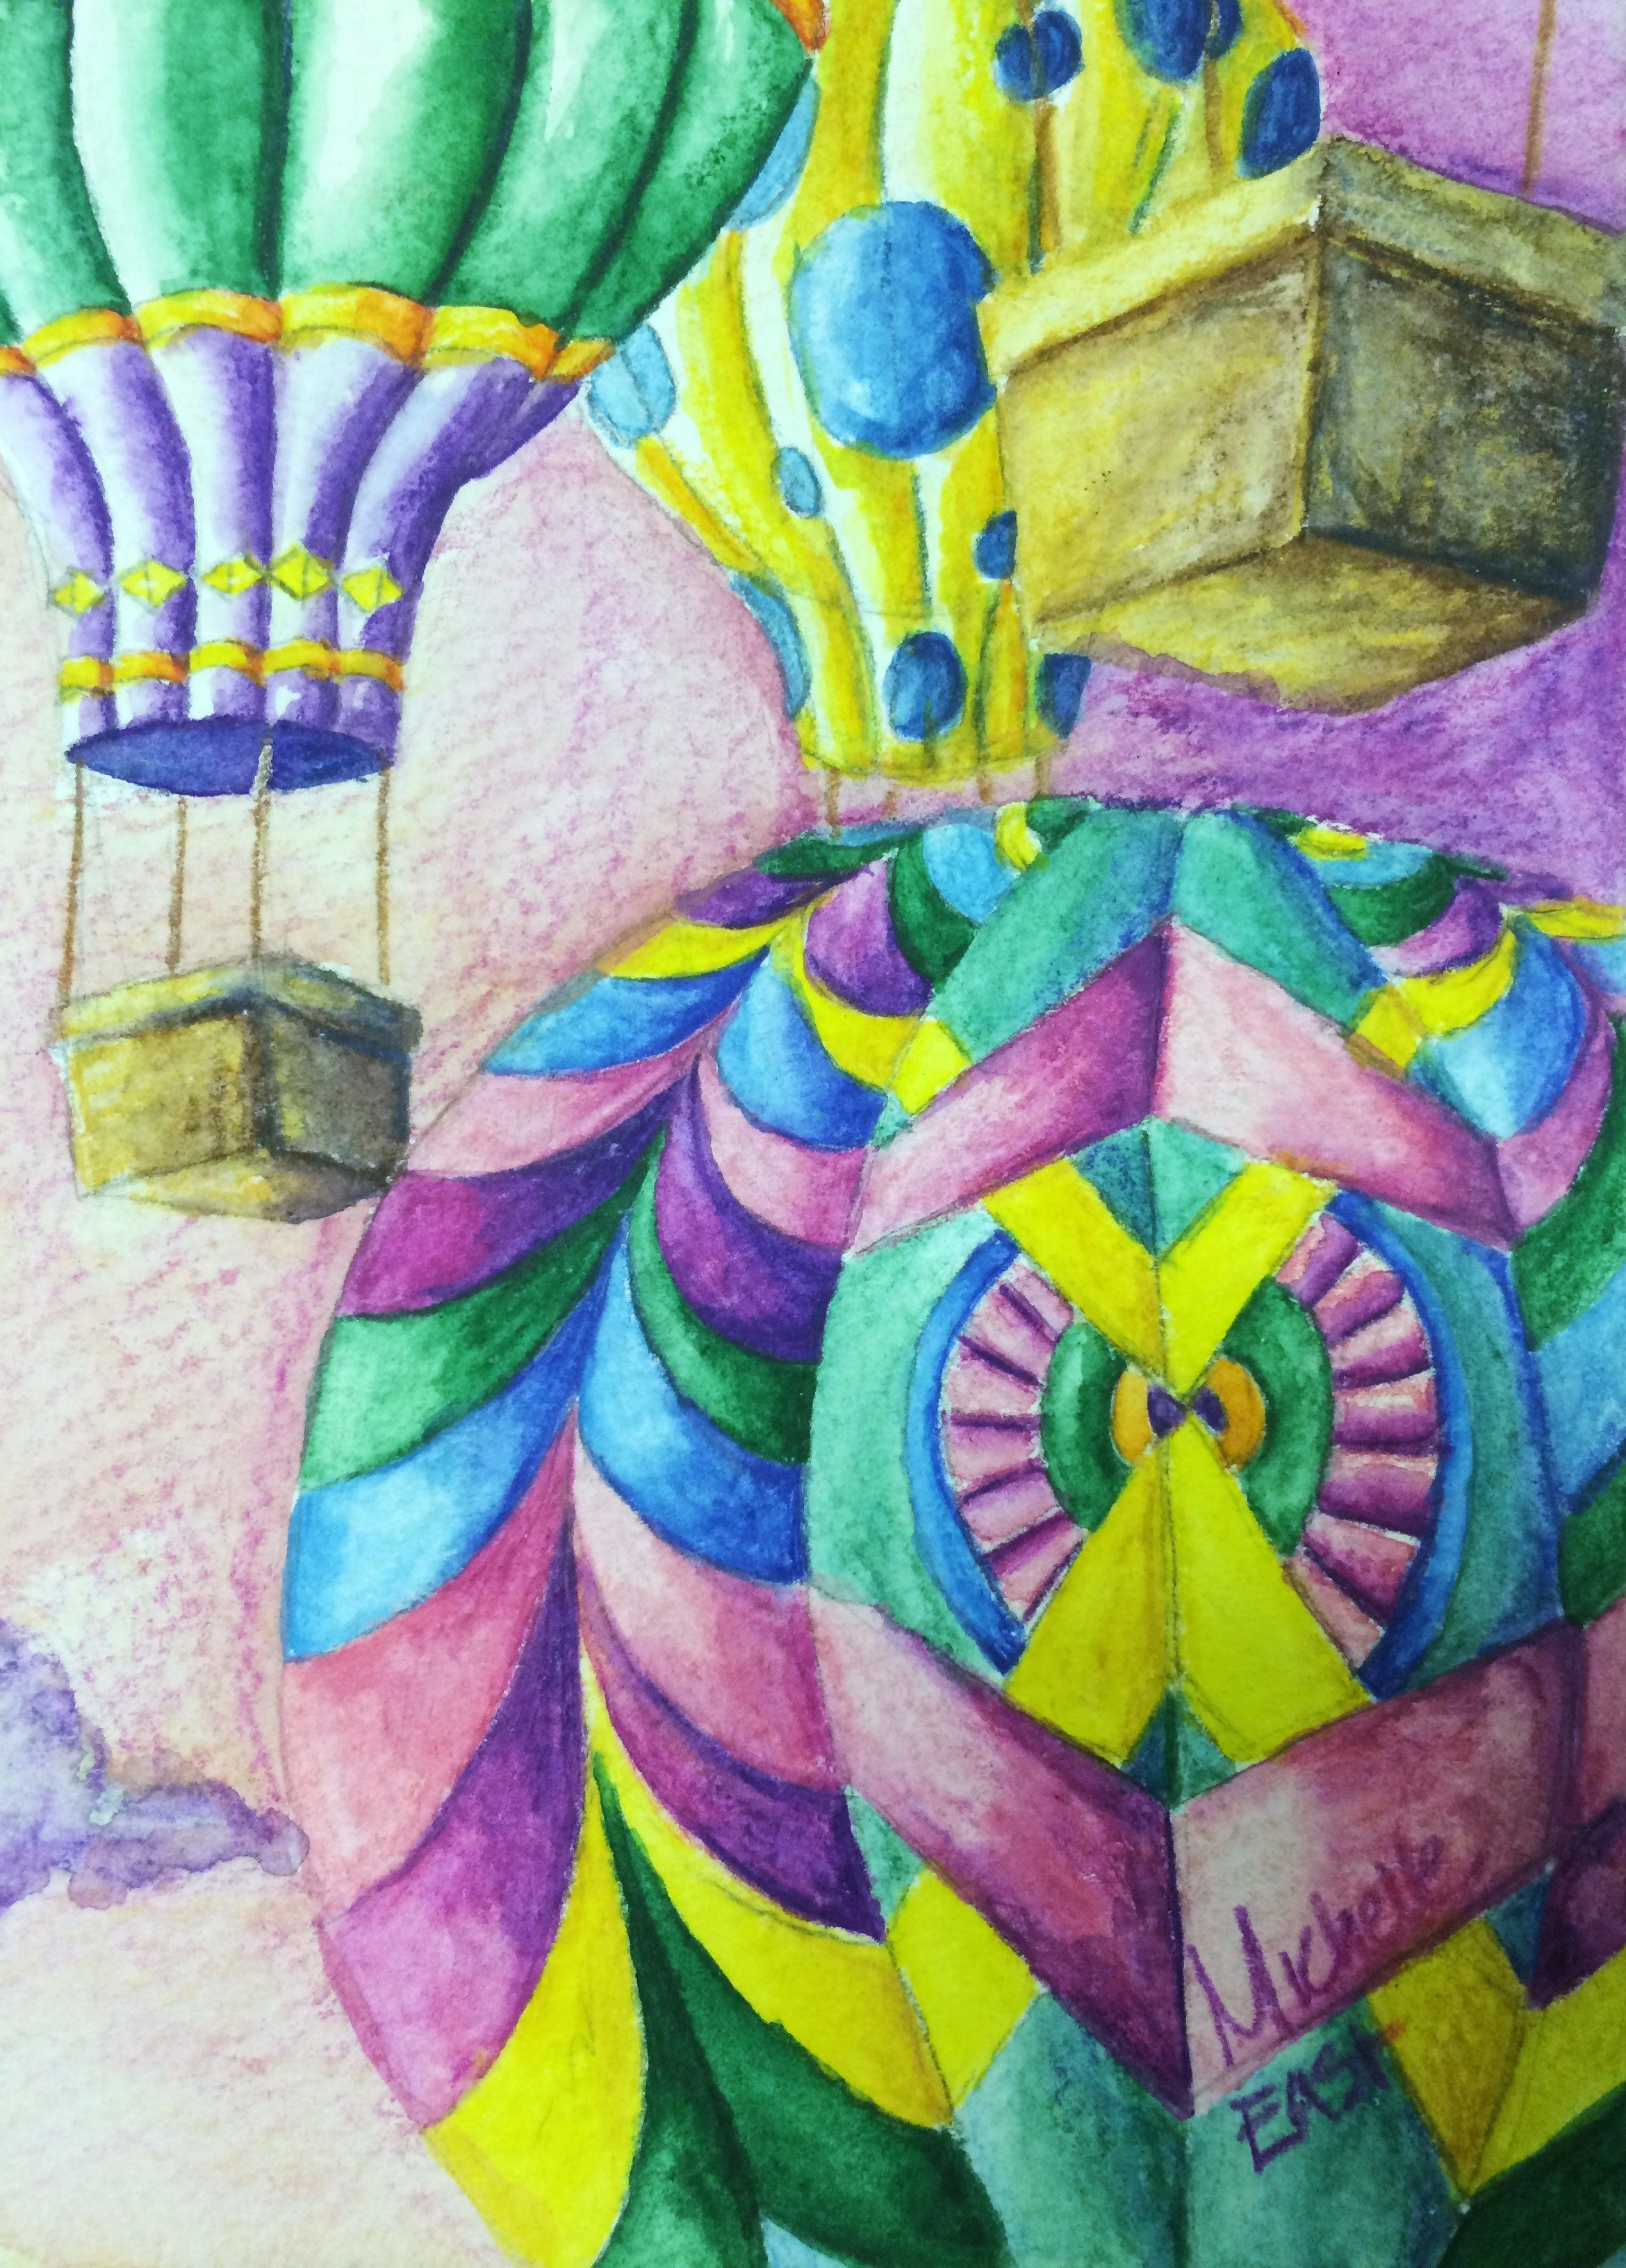 Hot Air Balloon Rhythm Pattern Variety Watercolor Pencil